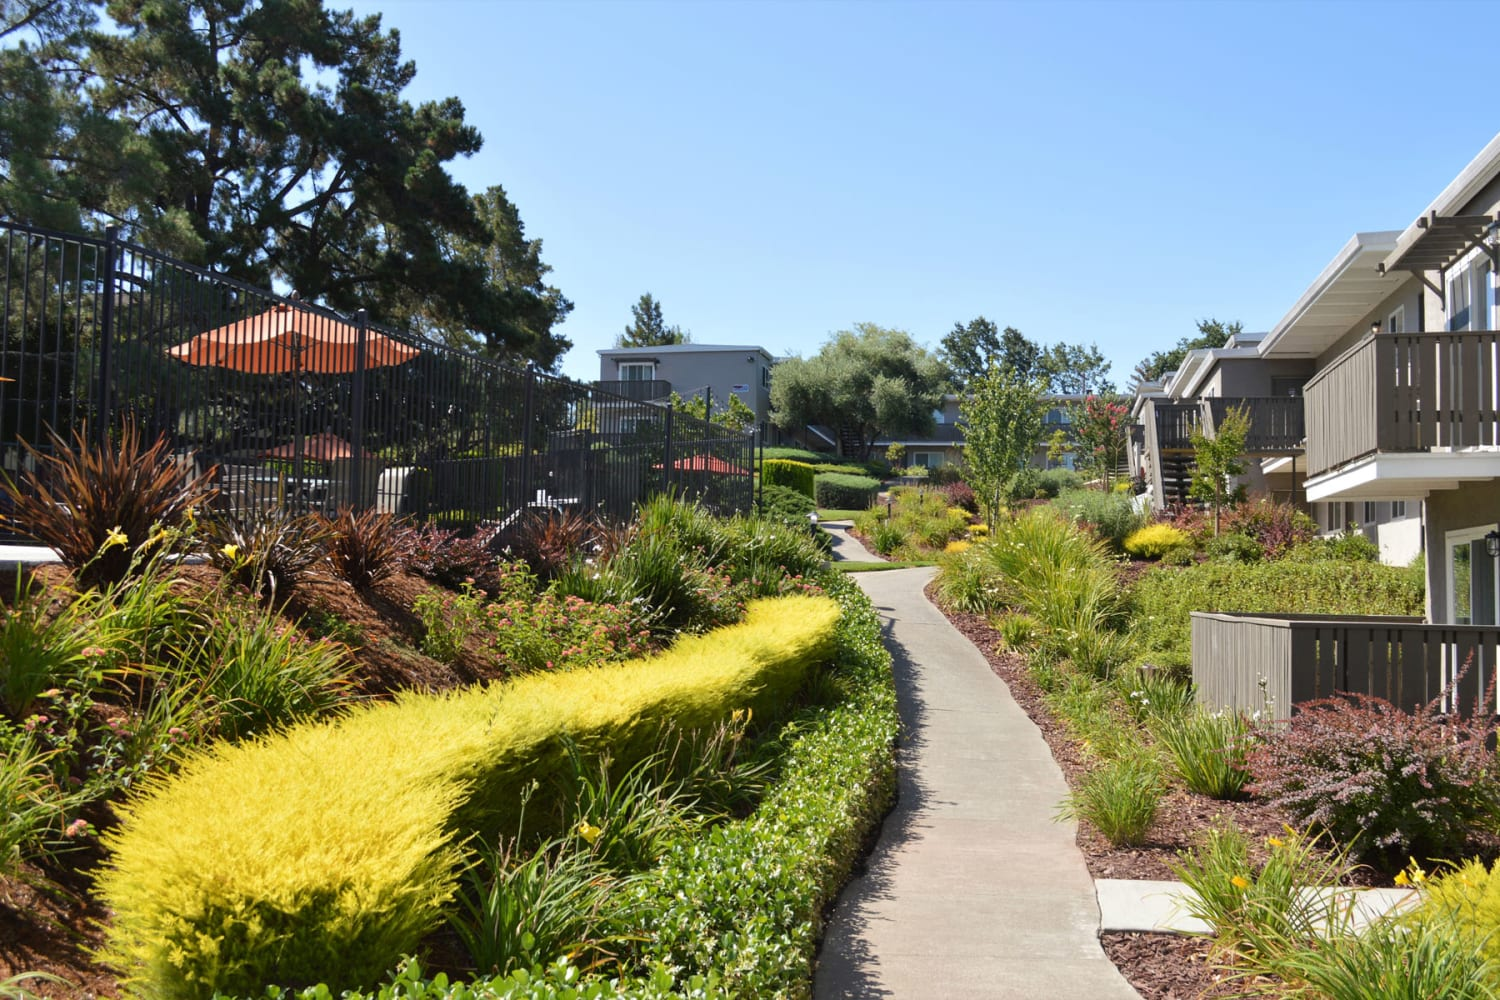 Lush landscaping along a pathway outside resident buildings at Pleasanton Heights in Pleasanton, California